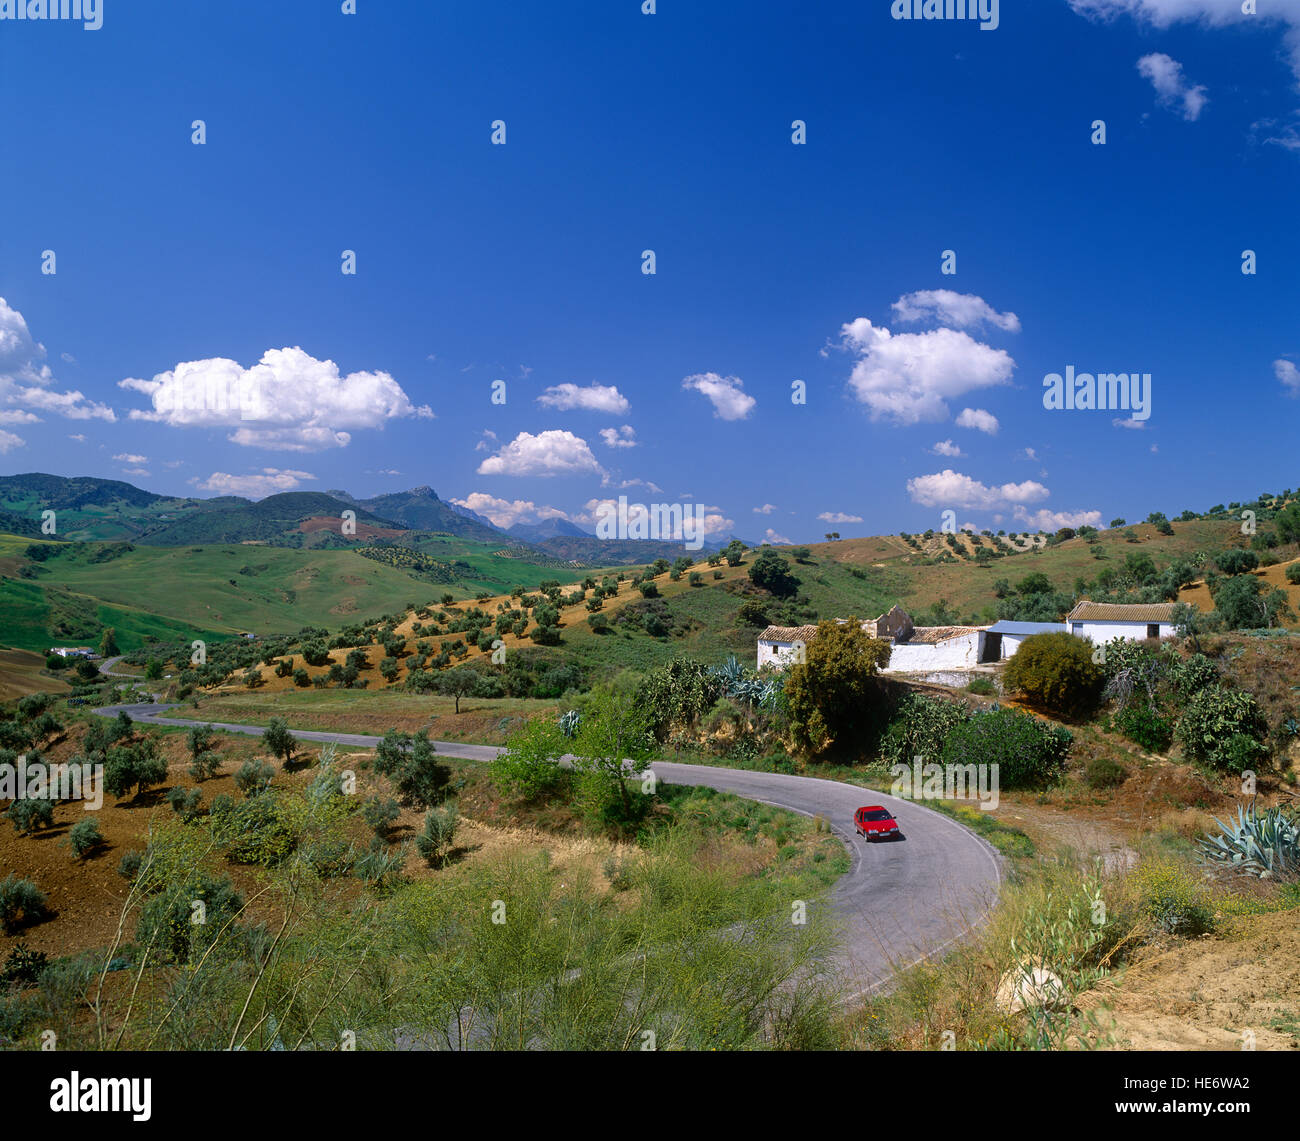 Andalusian landscape near Seville, Andalucia, Spain - Stock Image